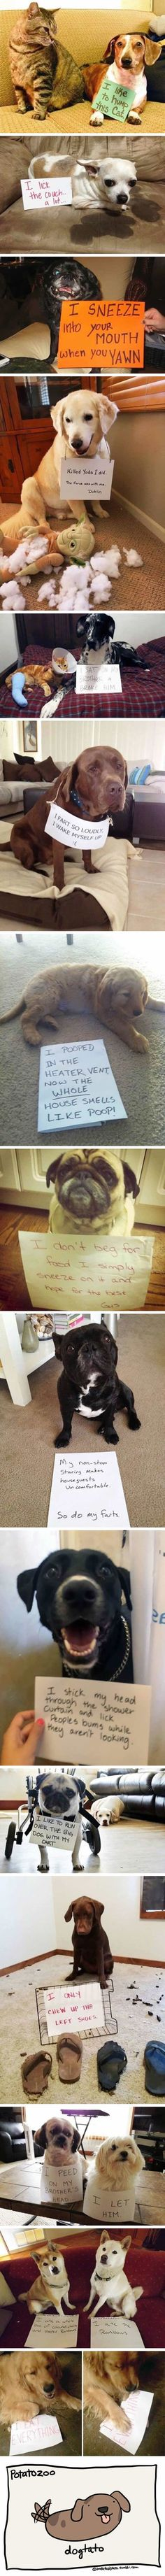 Dogs being shamed for their terrible crimes - 9GAG